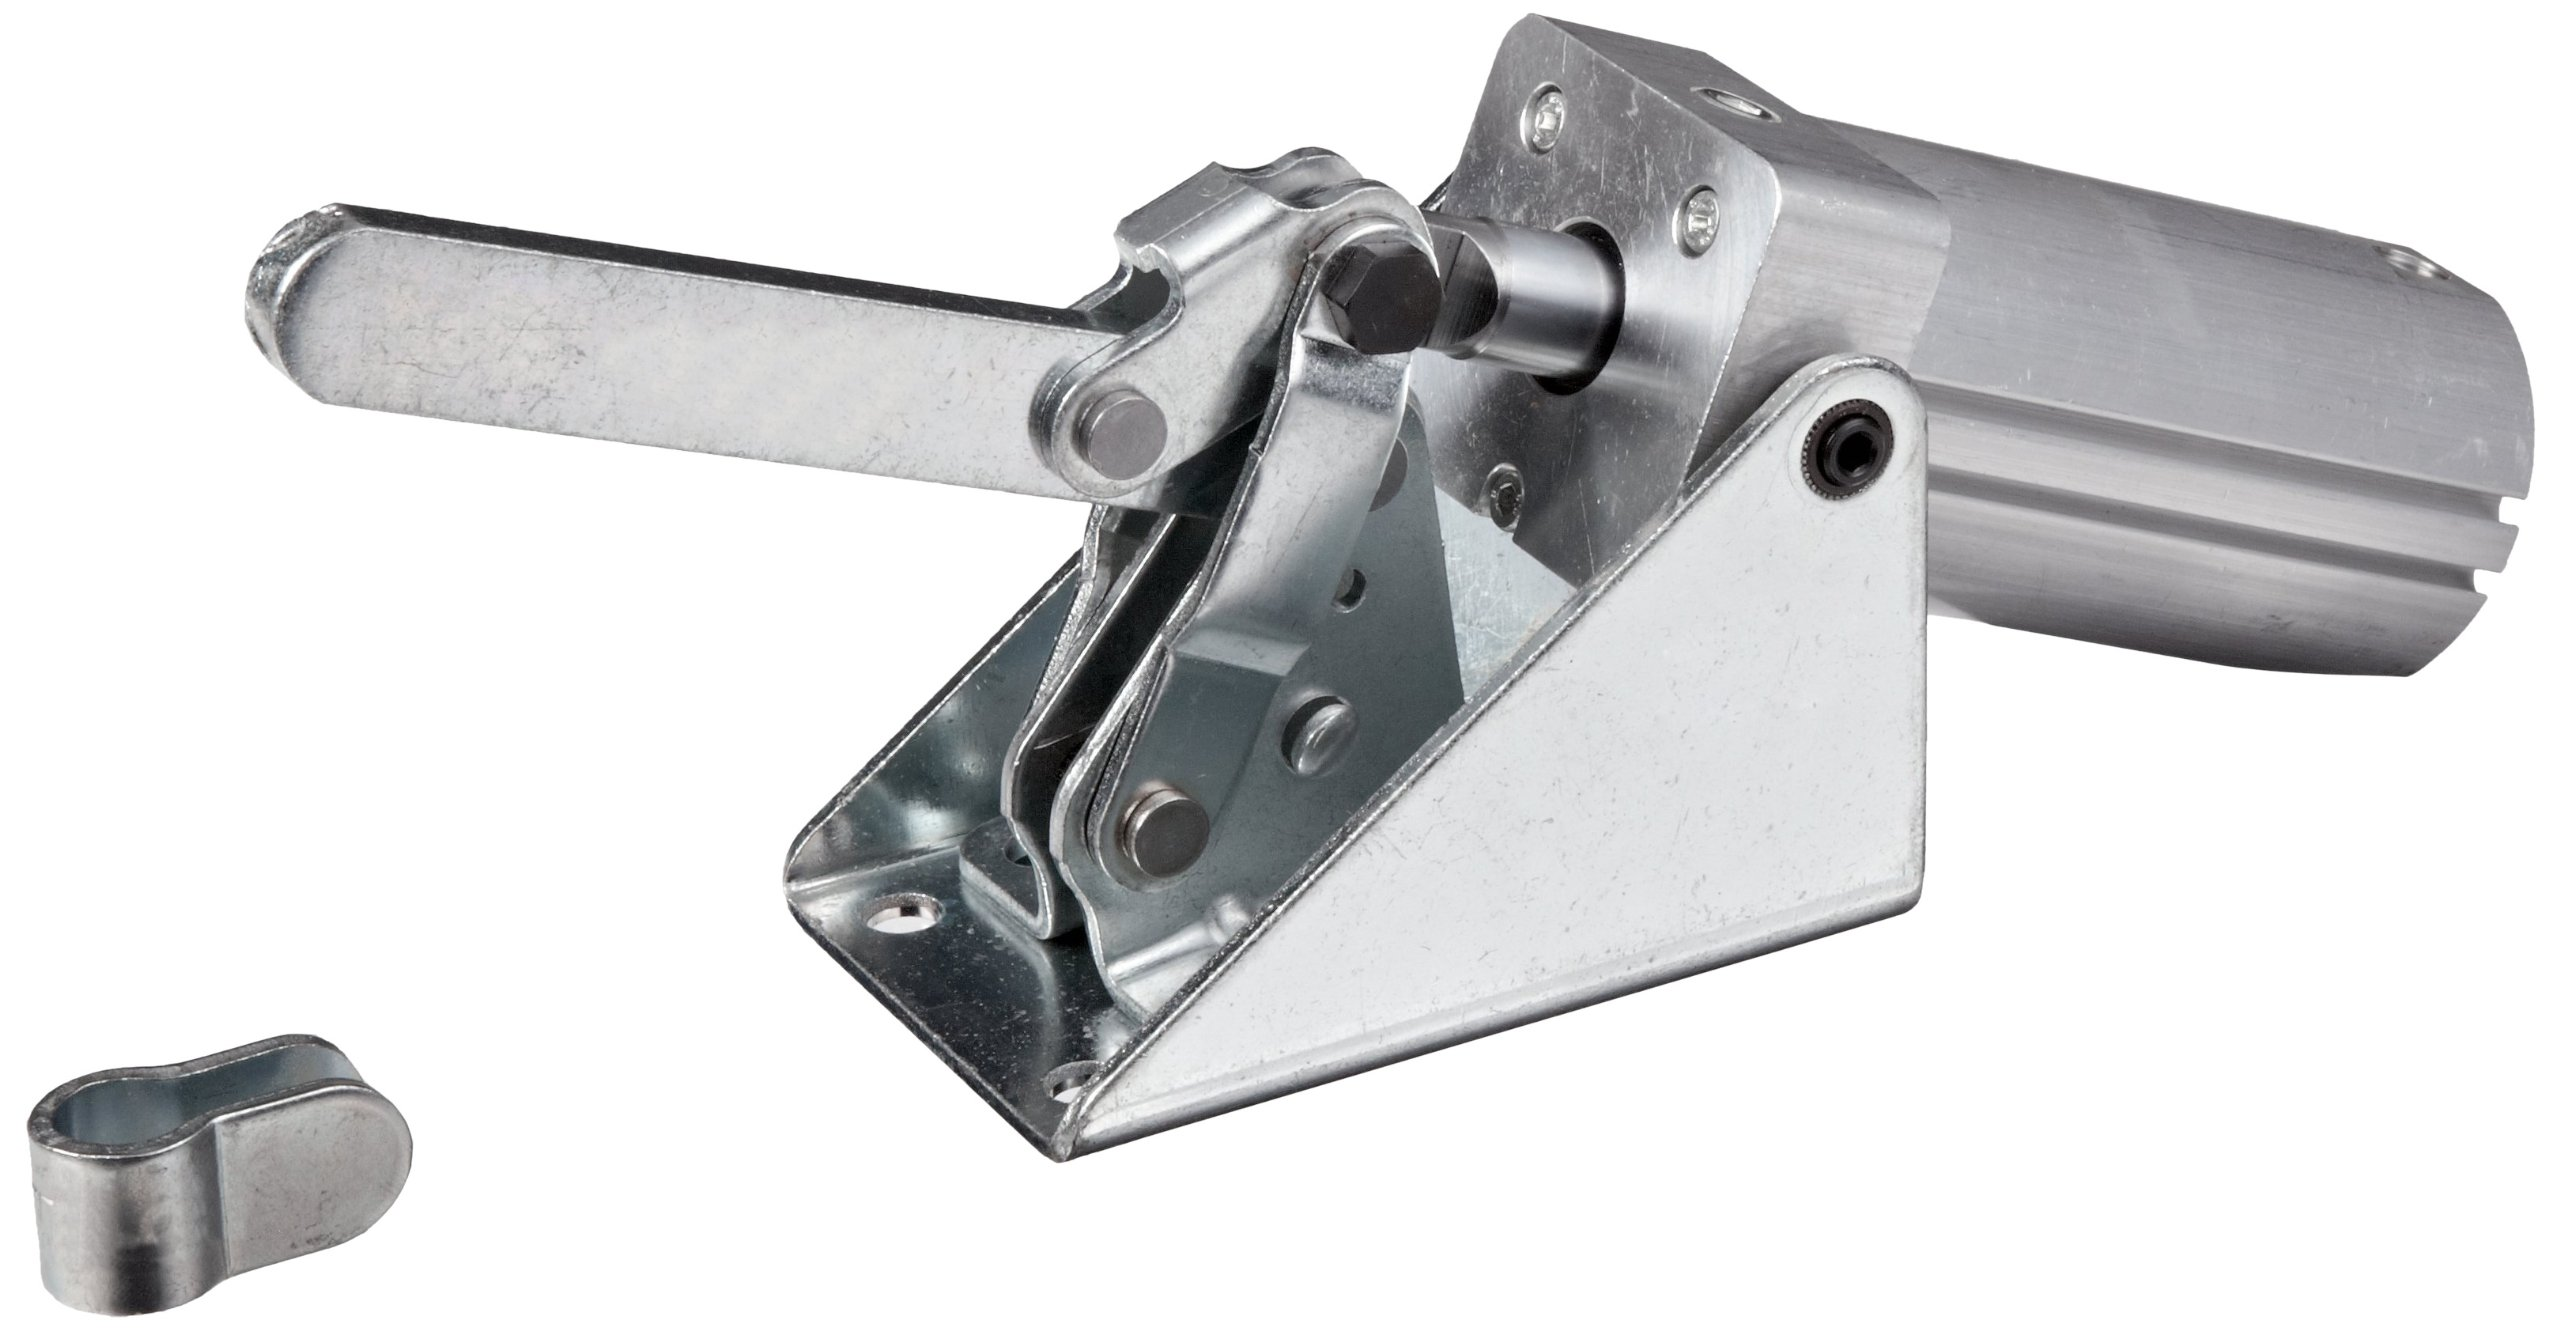 DE-STA-CO 810-S Pneumatic Hold Down Clamp